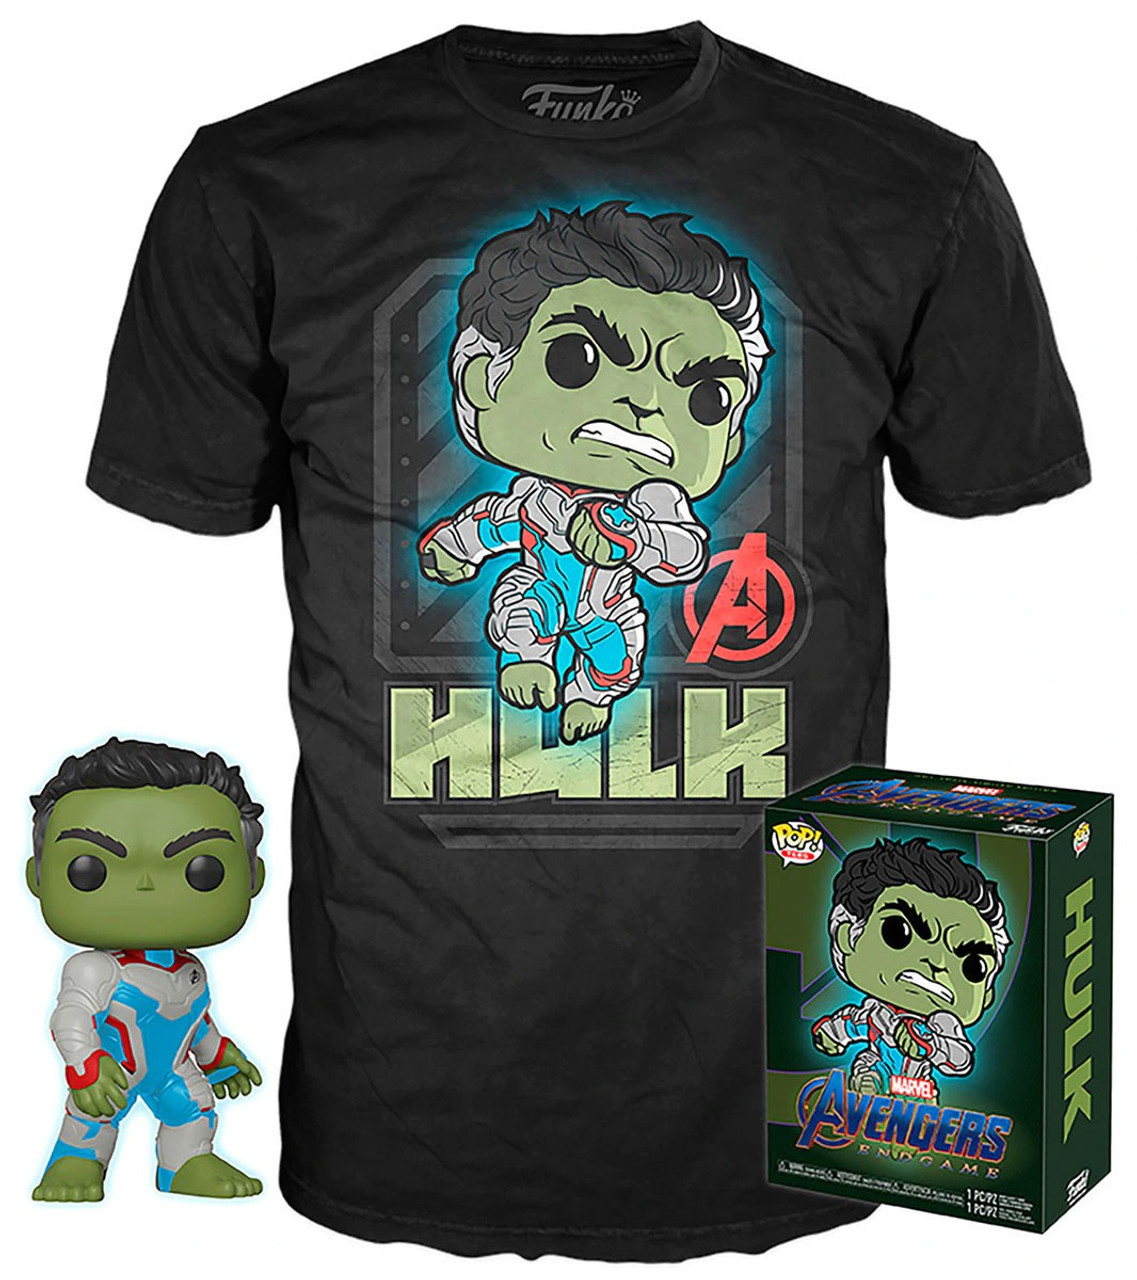 Avengers Endgame Funko POP! Marvel Hulk Exclusive Vinyl Figure & T-Shirt  [X-Small]